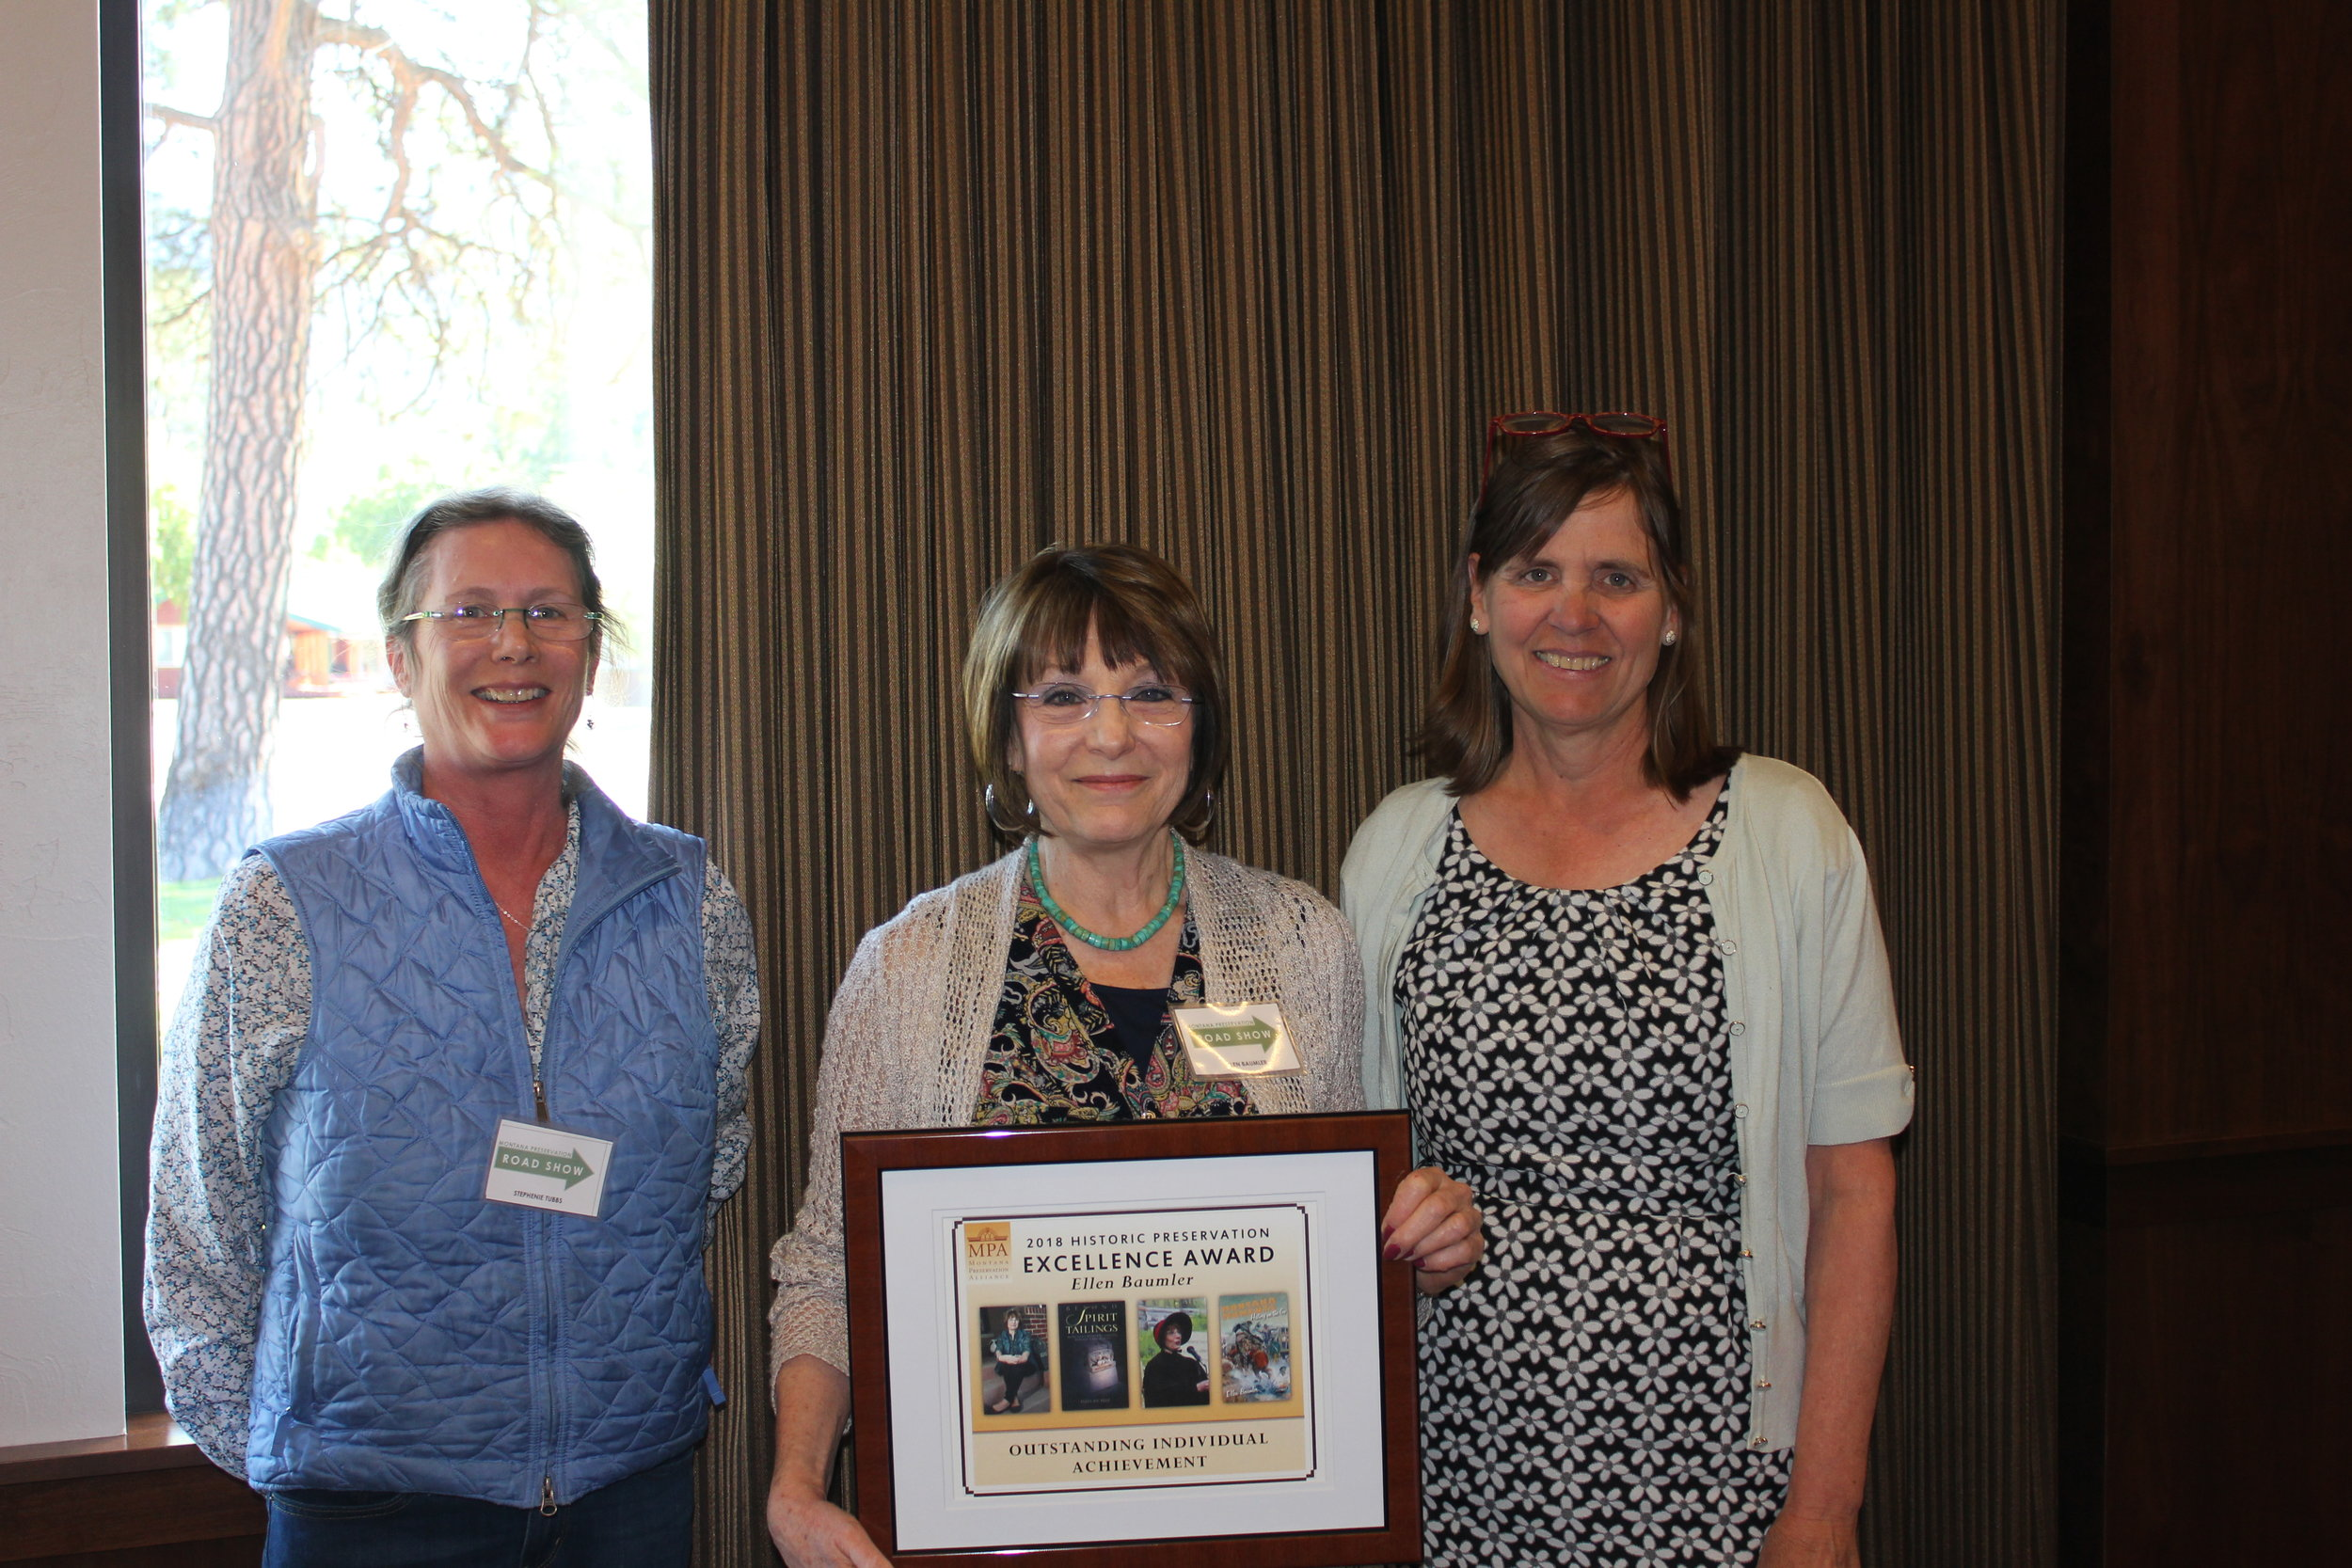 Outstanding Individual Achievement Award Winner Ellen Baumler with MPA Board Member Stephanie Ambrose-Tubbs (left) and Chere Jiusto (right).